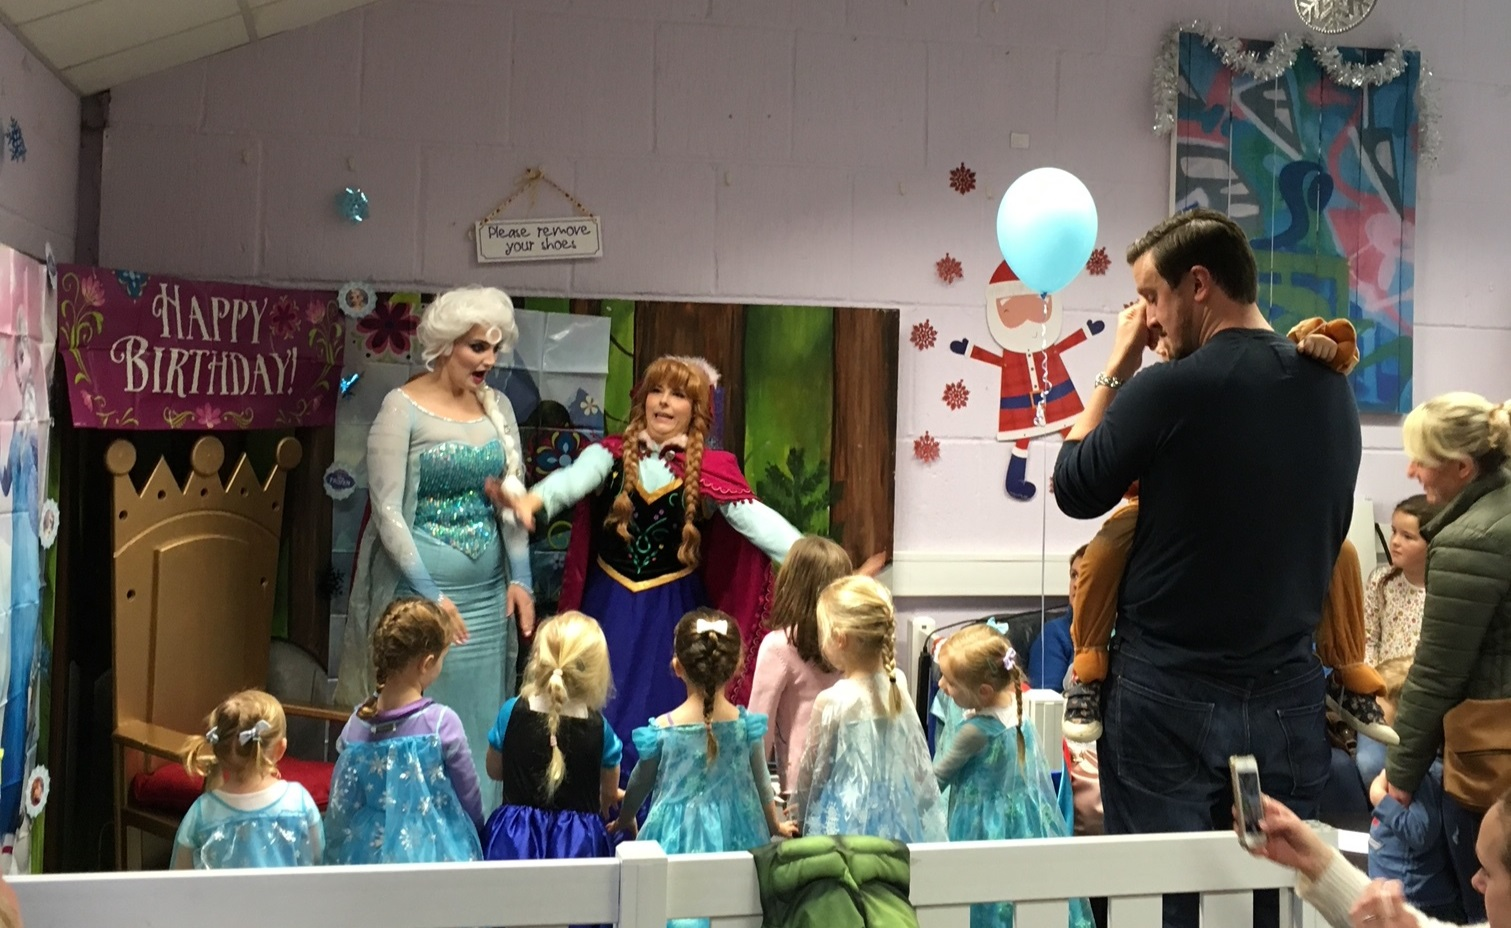 Children's parties - From the planning to the execution, we can make parties 'child's play'.